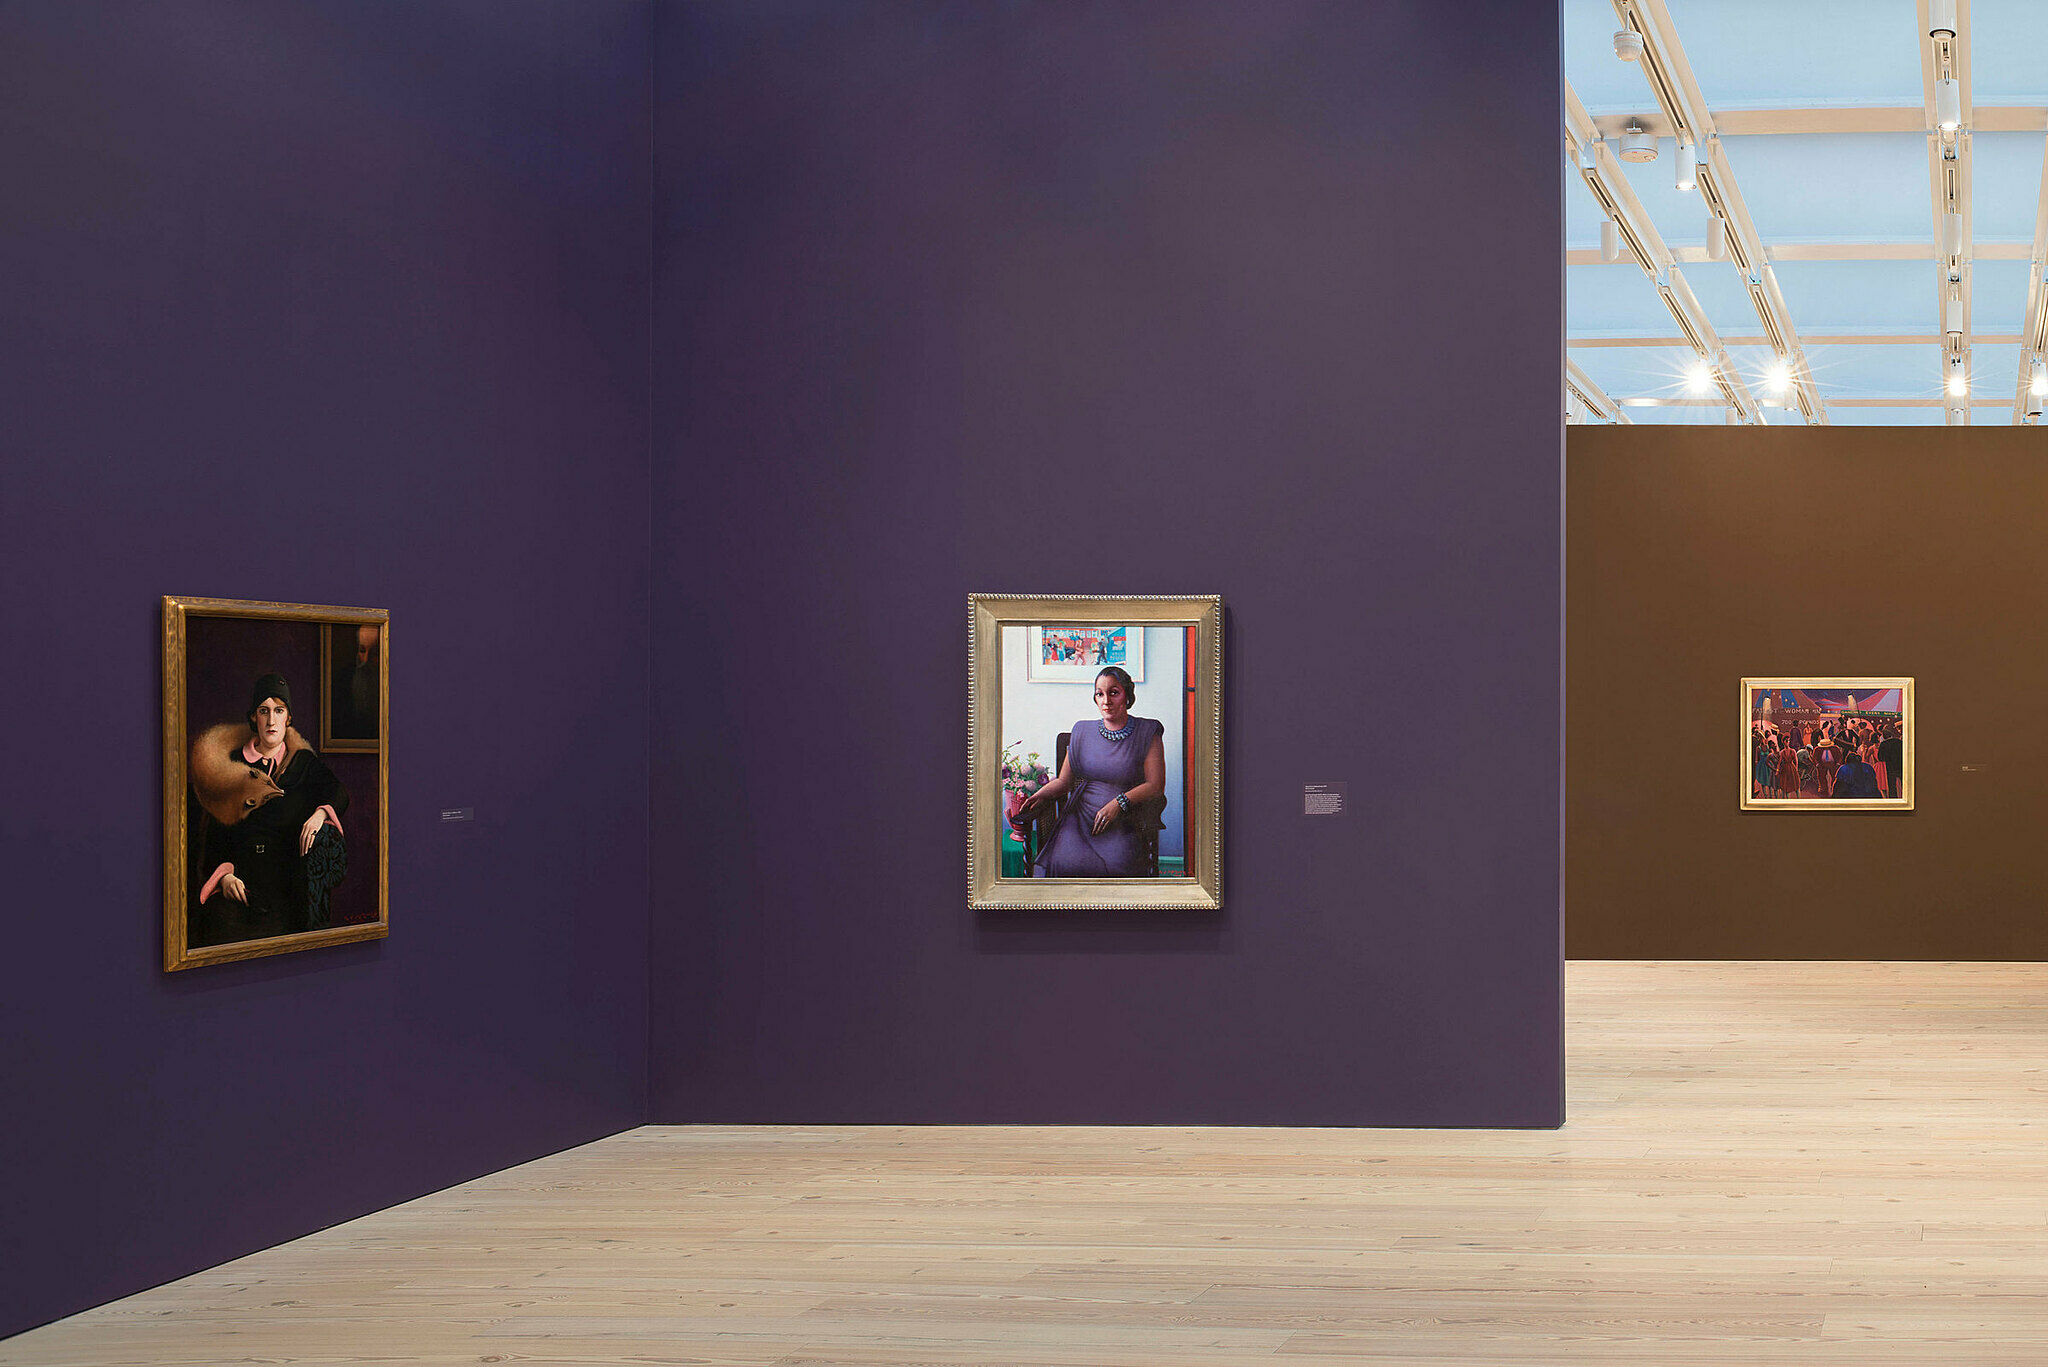 Paintings by Archibald Motley in a gallery at the Whitney Museum.